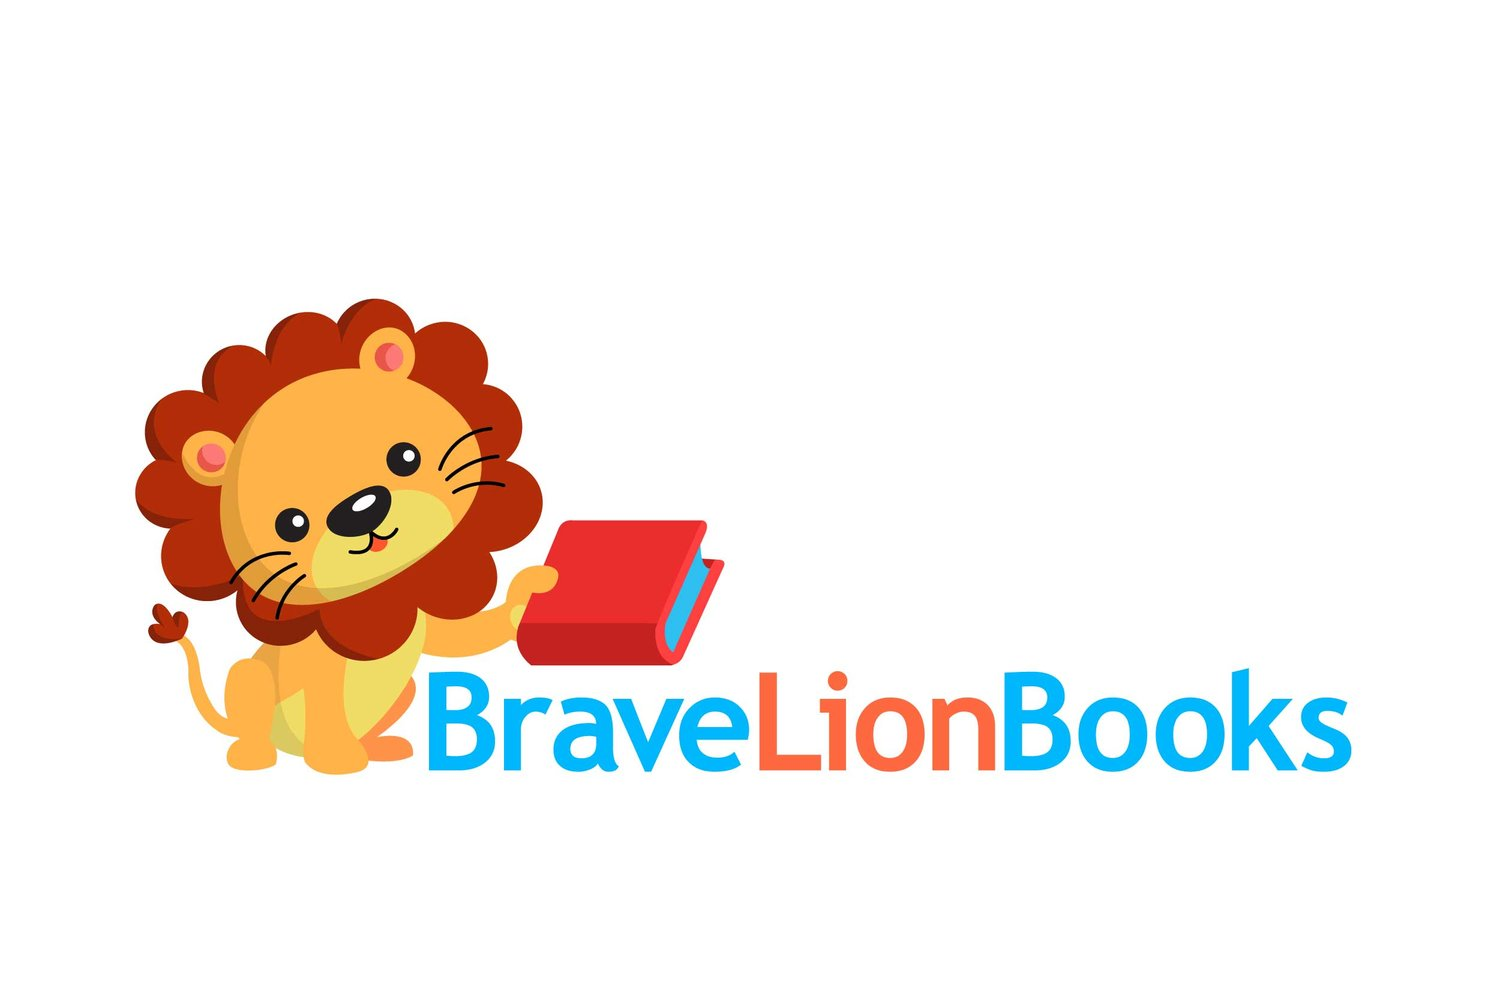 Brave Lion Books